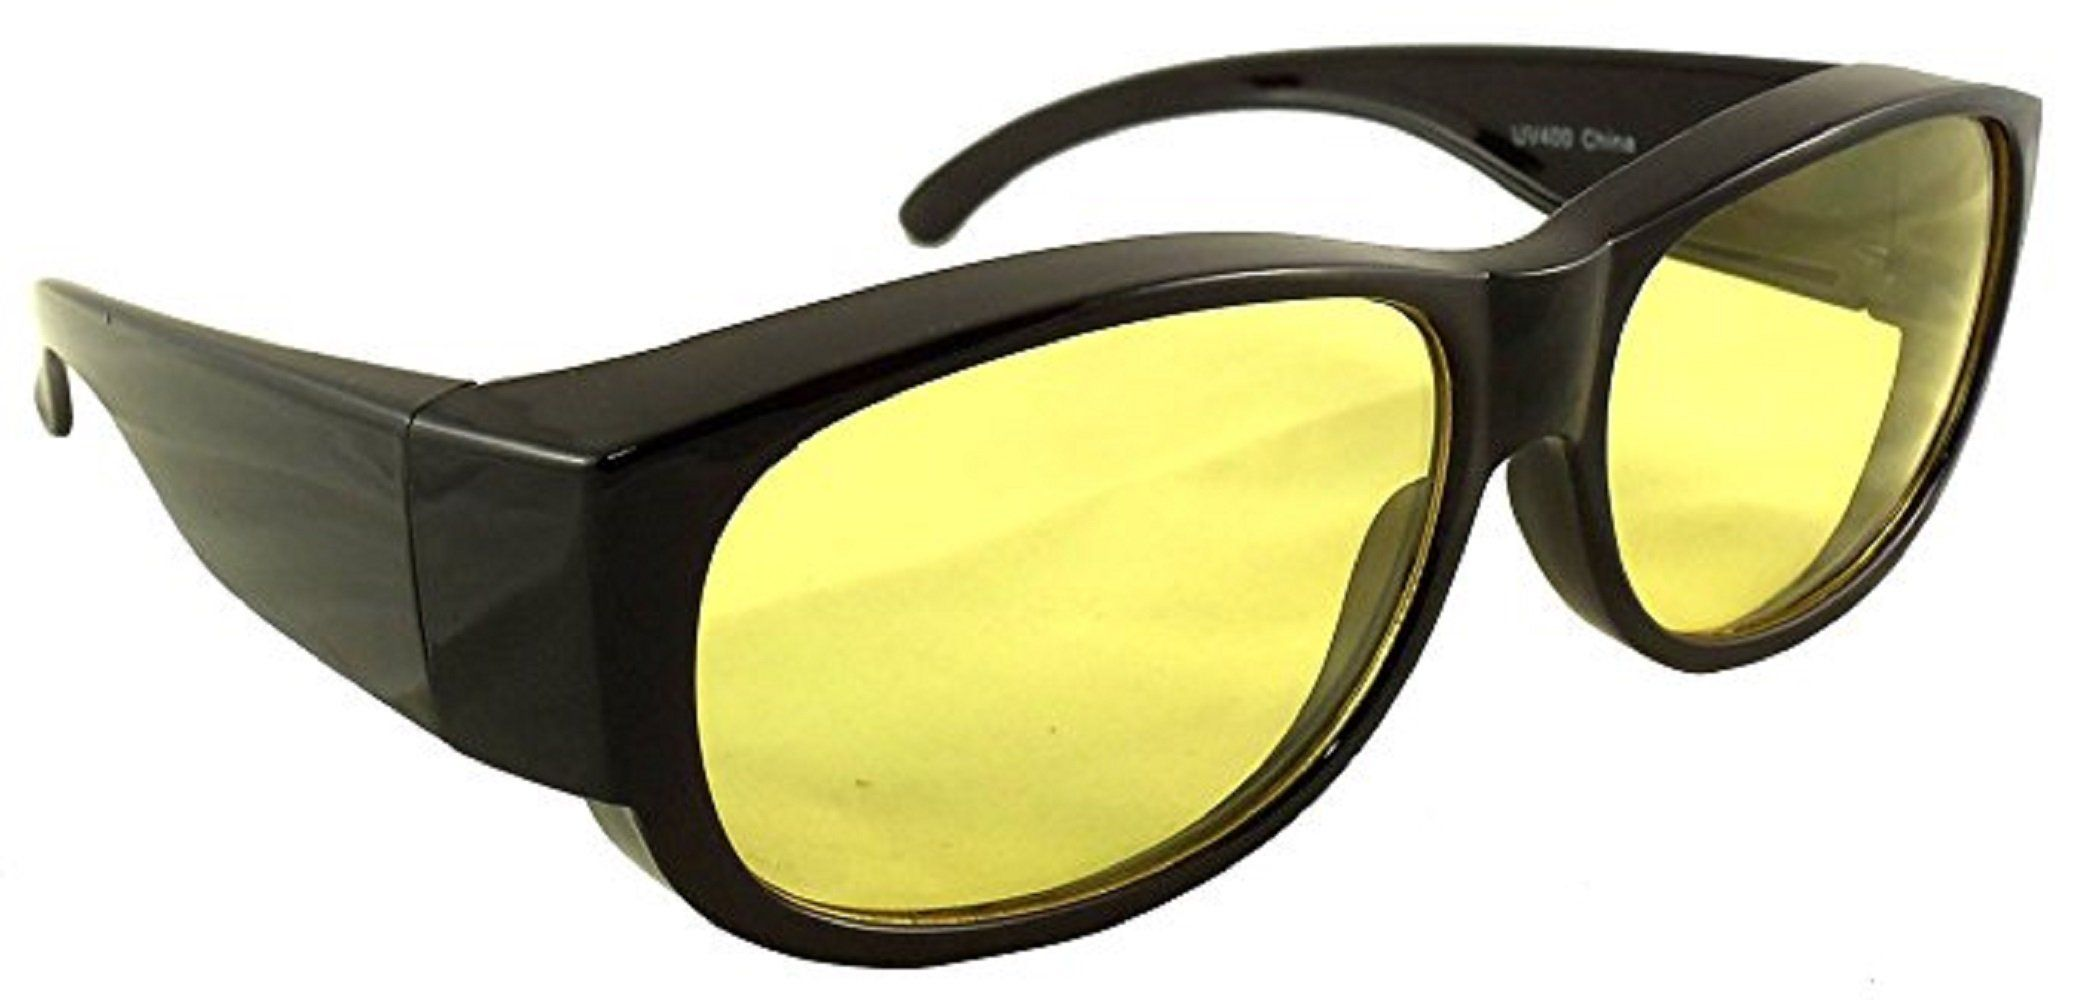 46eb4a25569 Duco Unisex Wear Over Prescription Glasses Rx Glasses Polarized Sunglasses  8953 8953-02